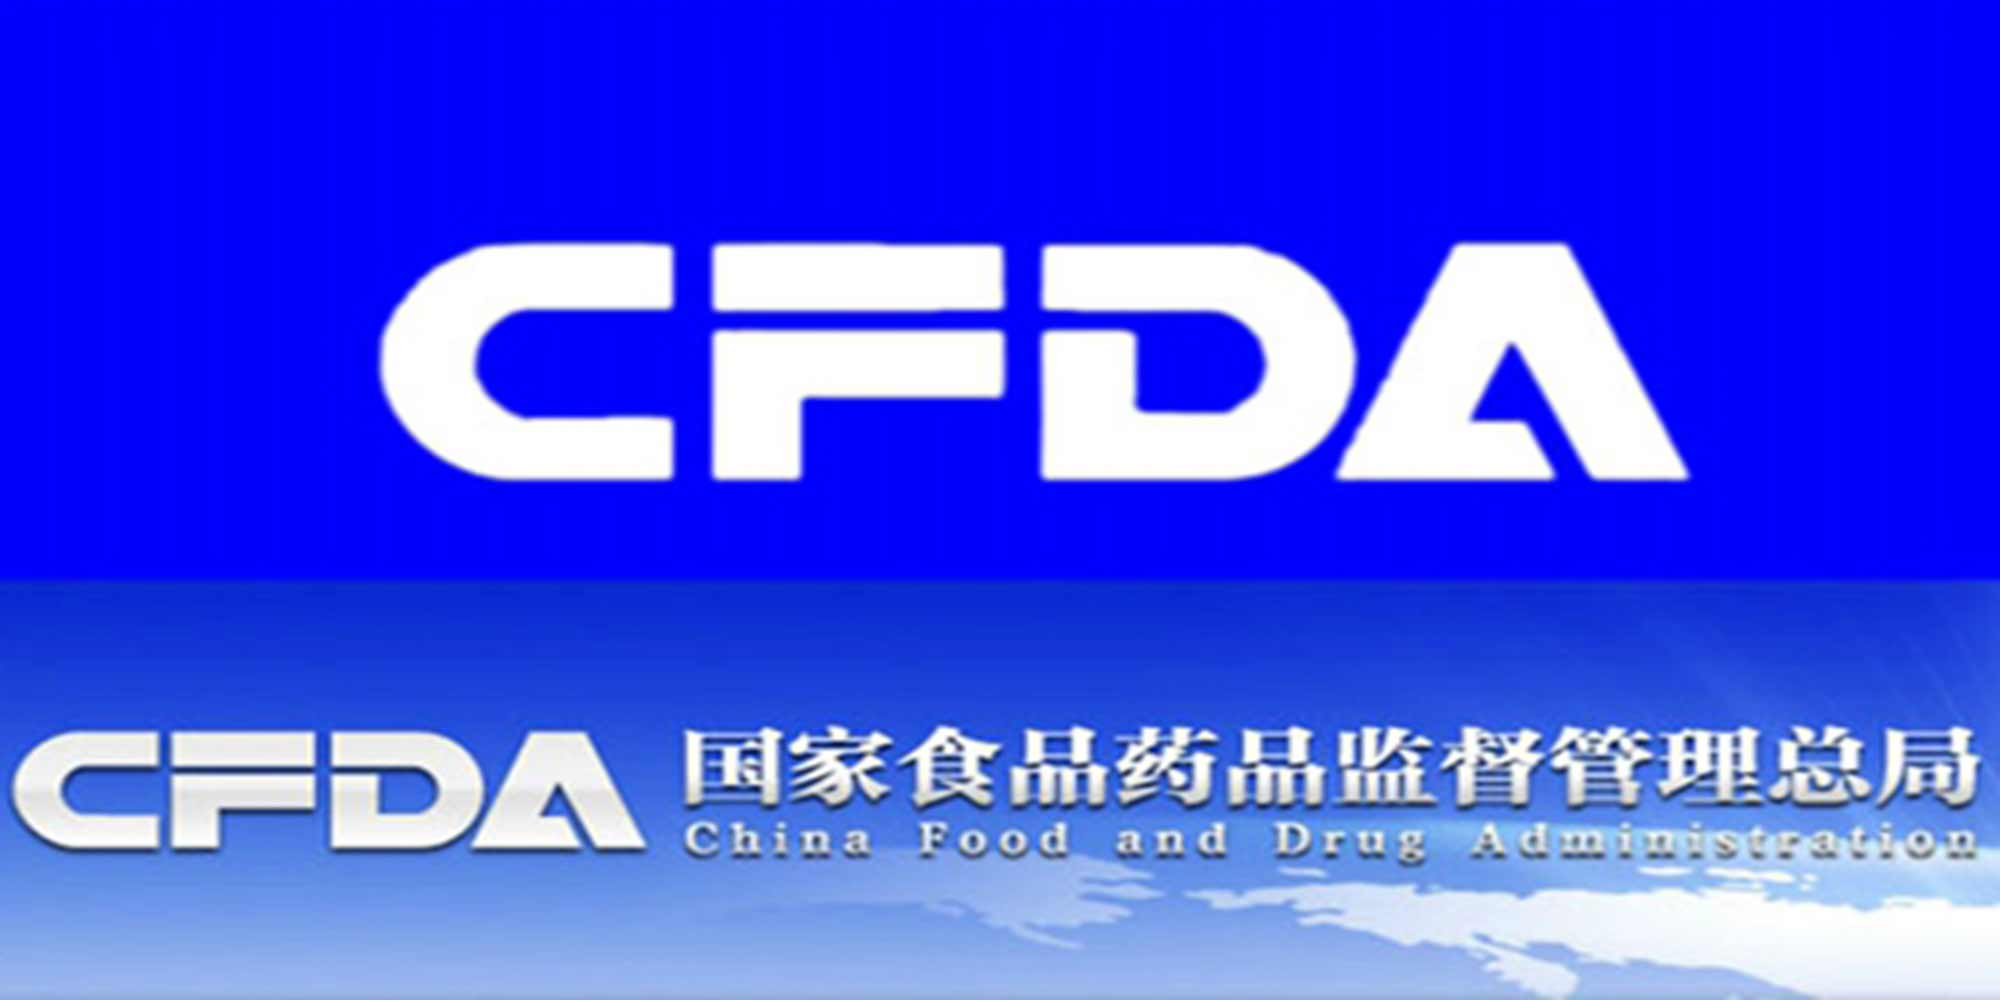 CFDA: Draft Guidance on Data Management